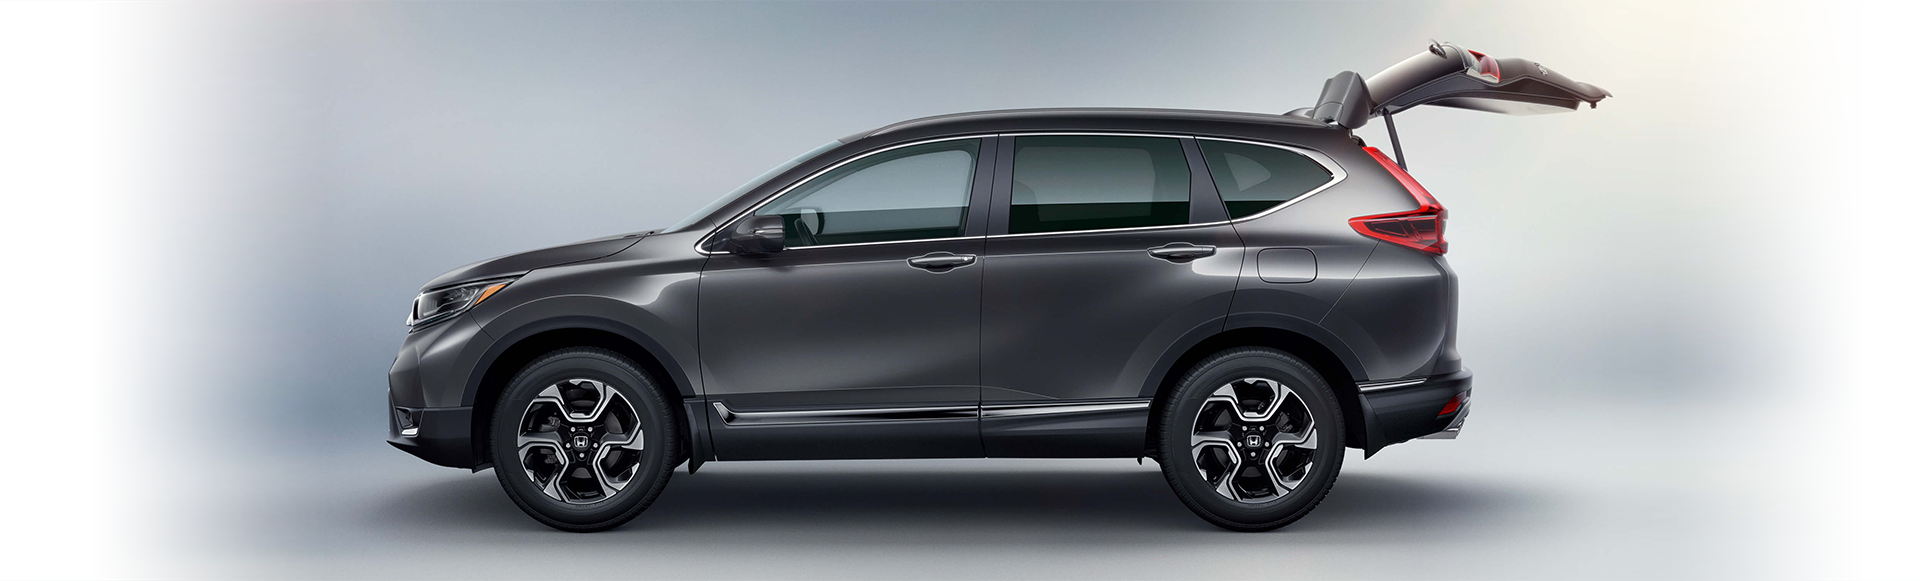 The New 2018 Honda Cr V At Harmony In Kelowna Amp Wire Harness Motor Trend Suv Of Year Falls Into Latter Campa Supreme Example Calm Confident Composure That Delivers All